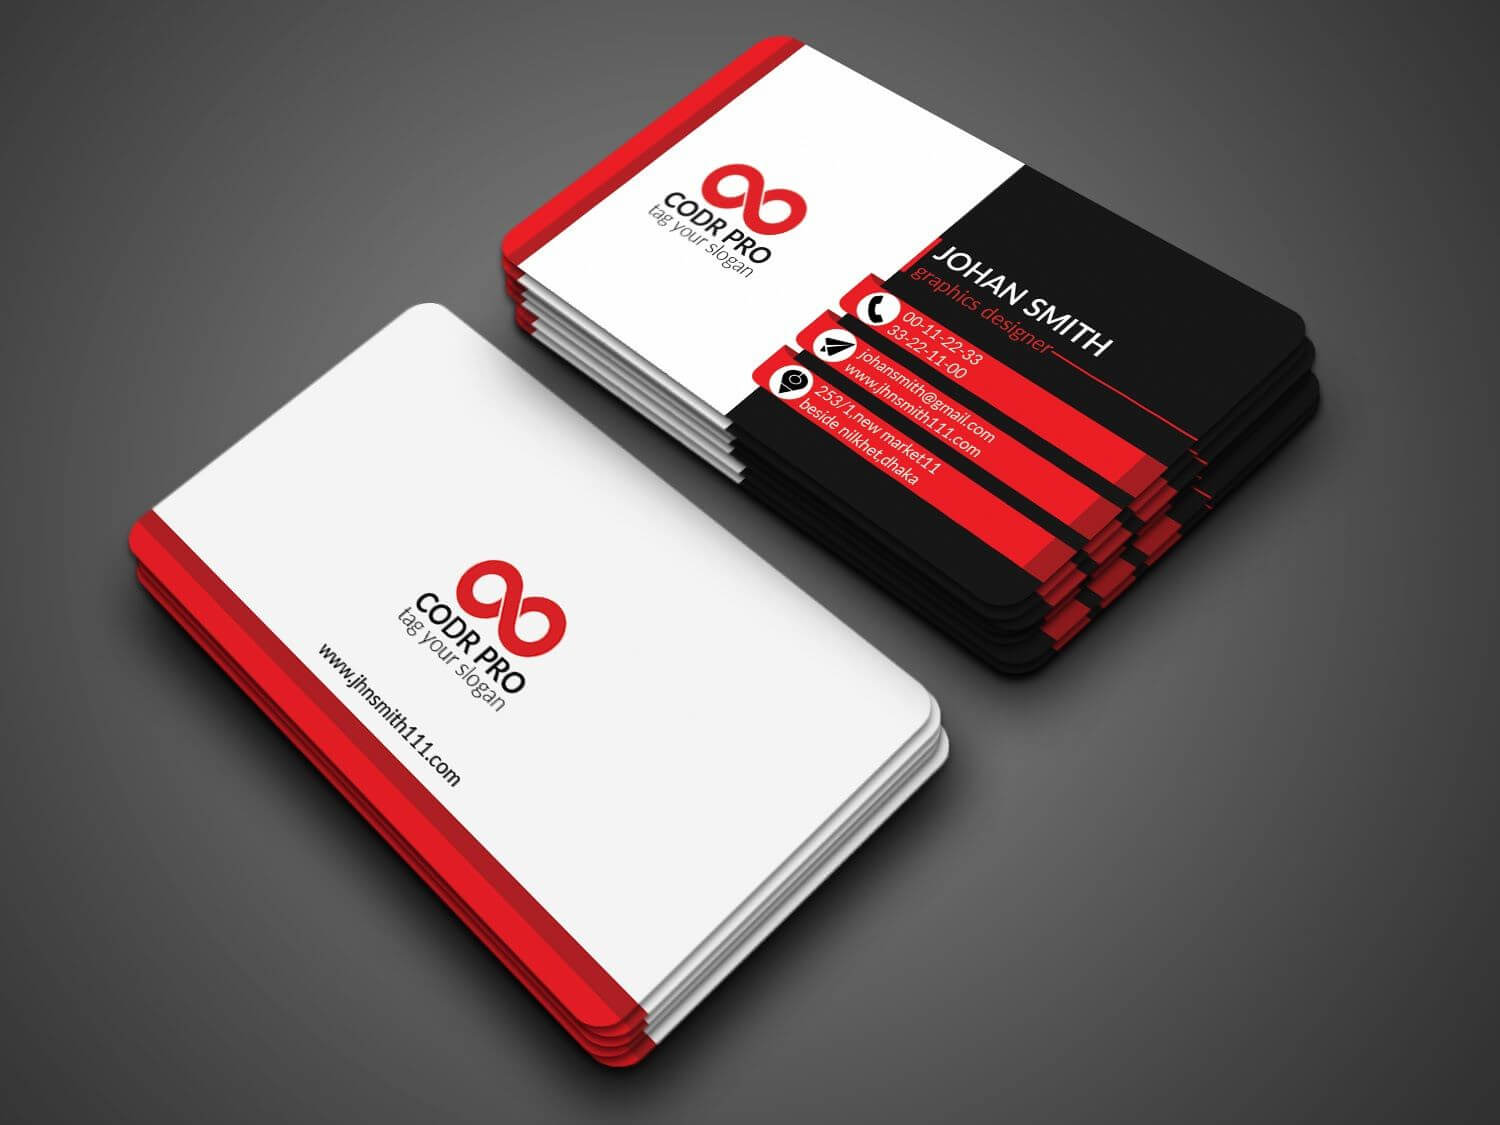 Professional Business Card Design In Photoshop Cs6 Tutorial Inside Photoshop Cs6 Business Card Template